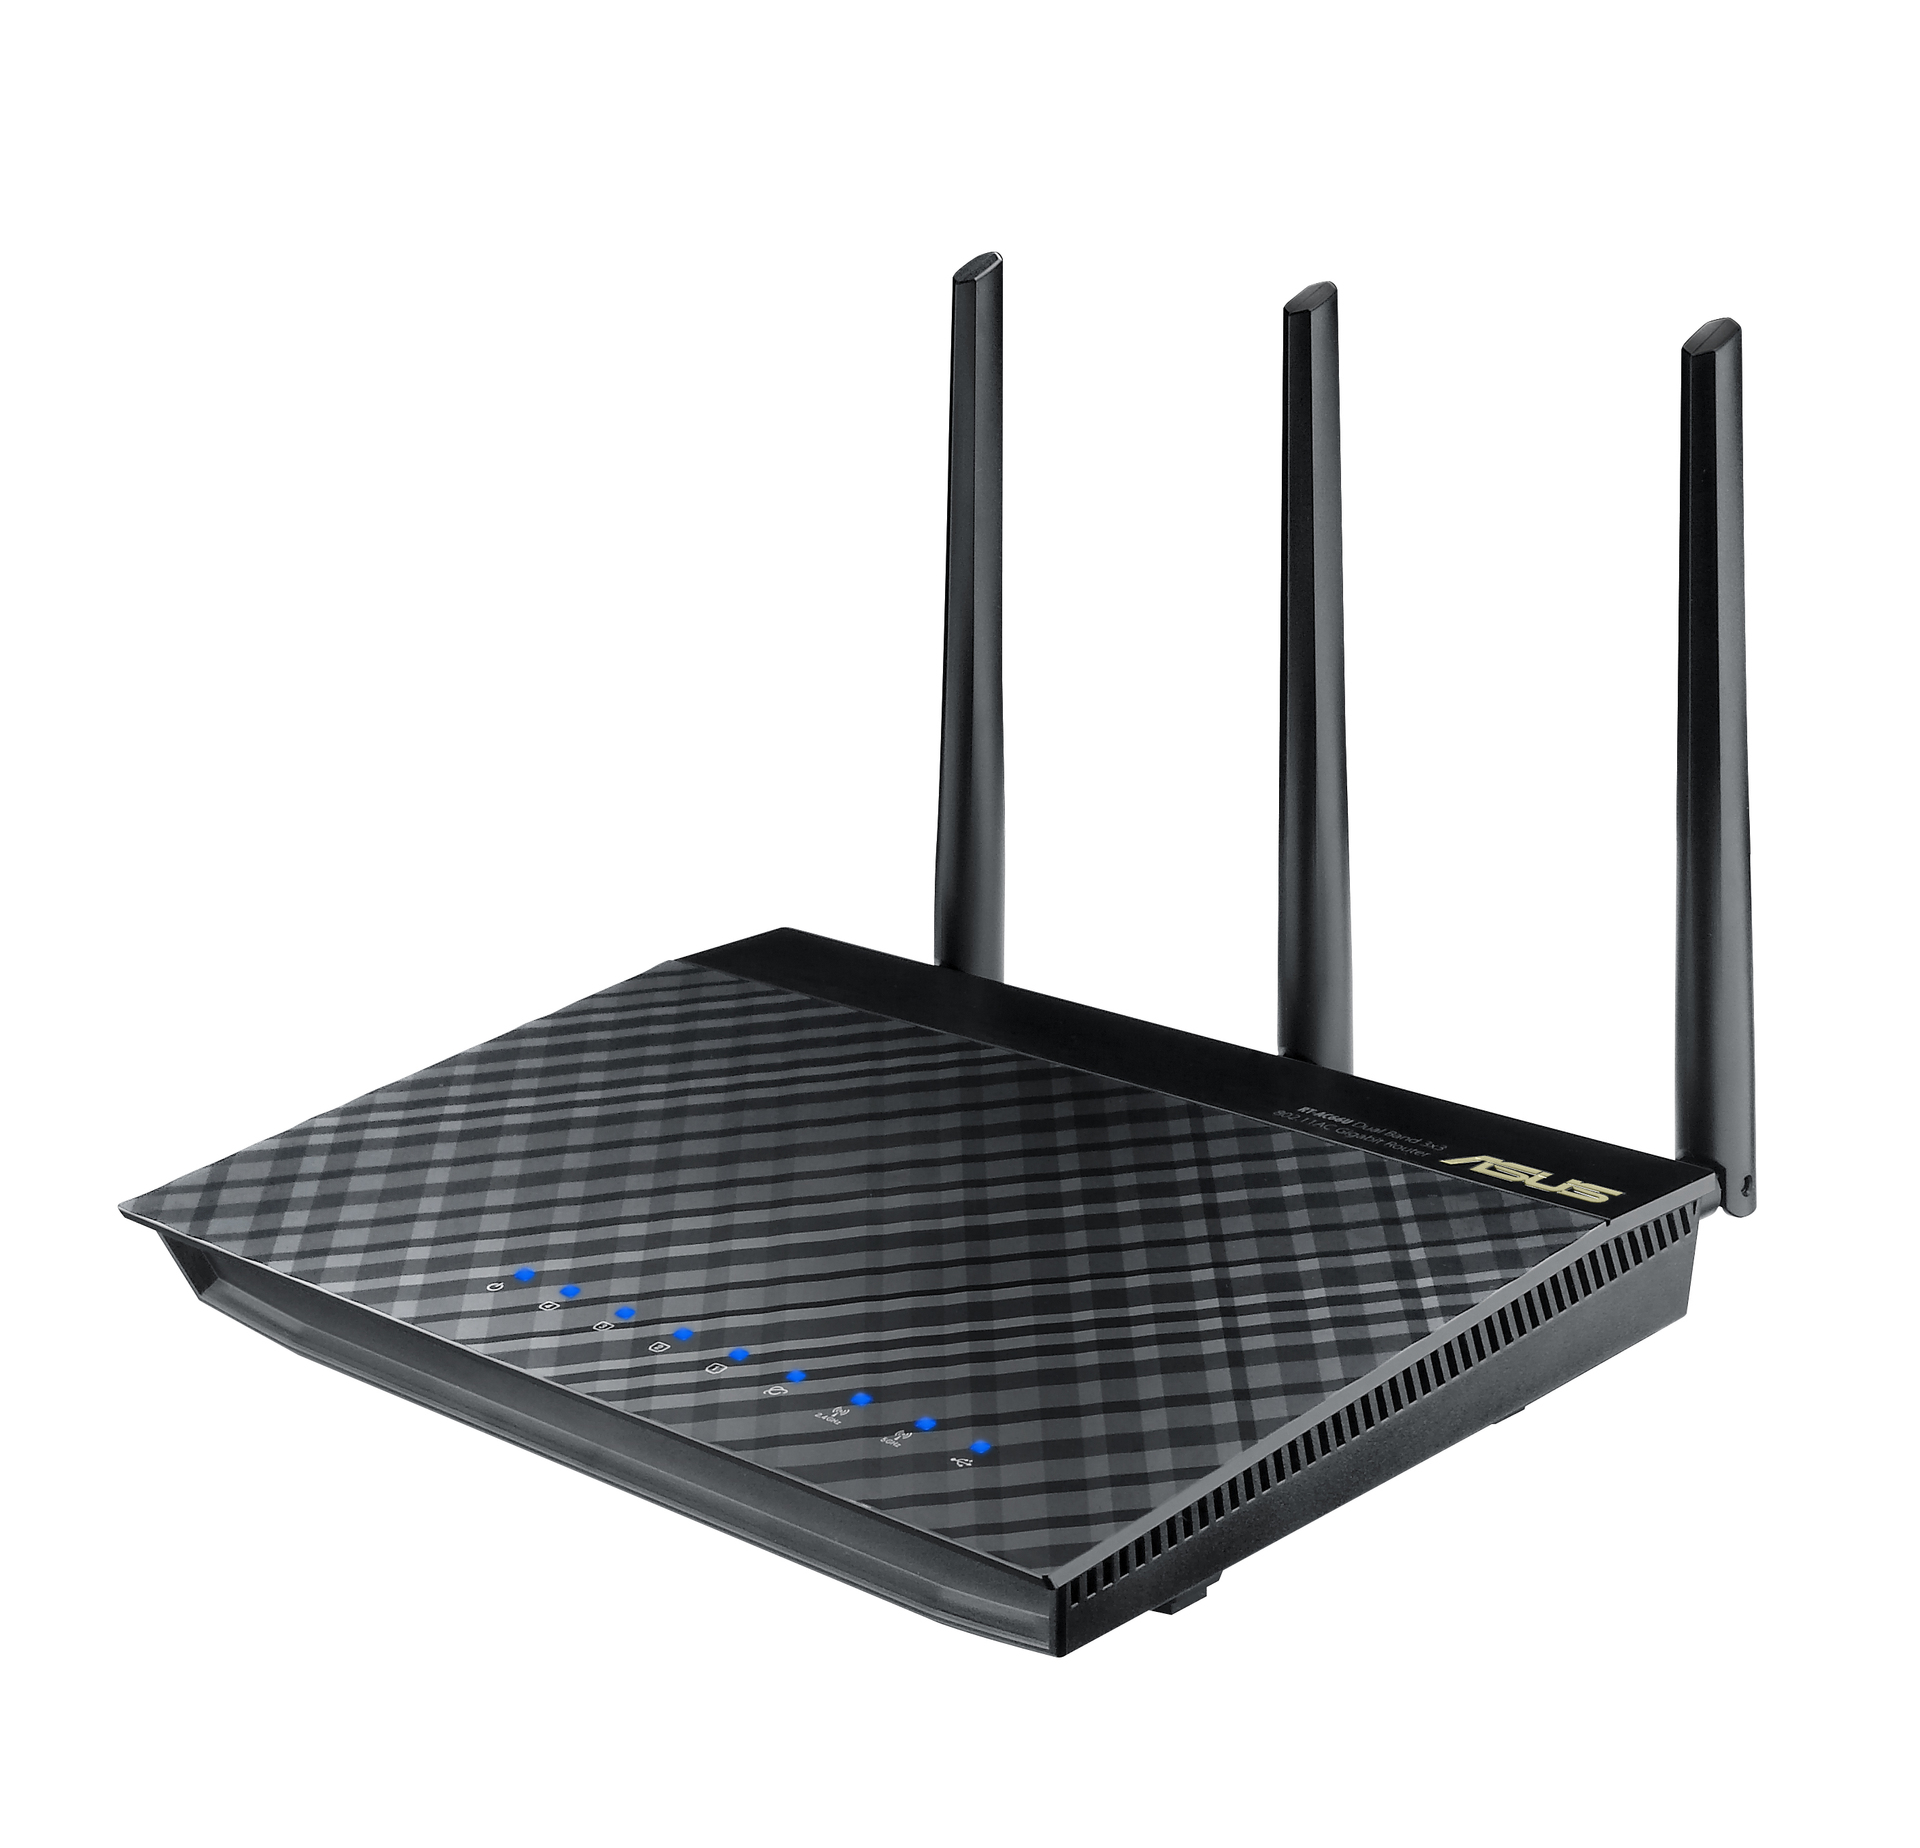 ASUS RT-AC66R Dual-Band Wireless-AC1750 Gigabit Router IEEE 802.11ac ...